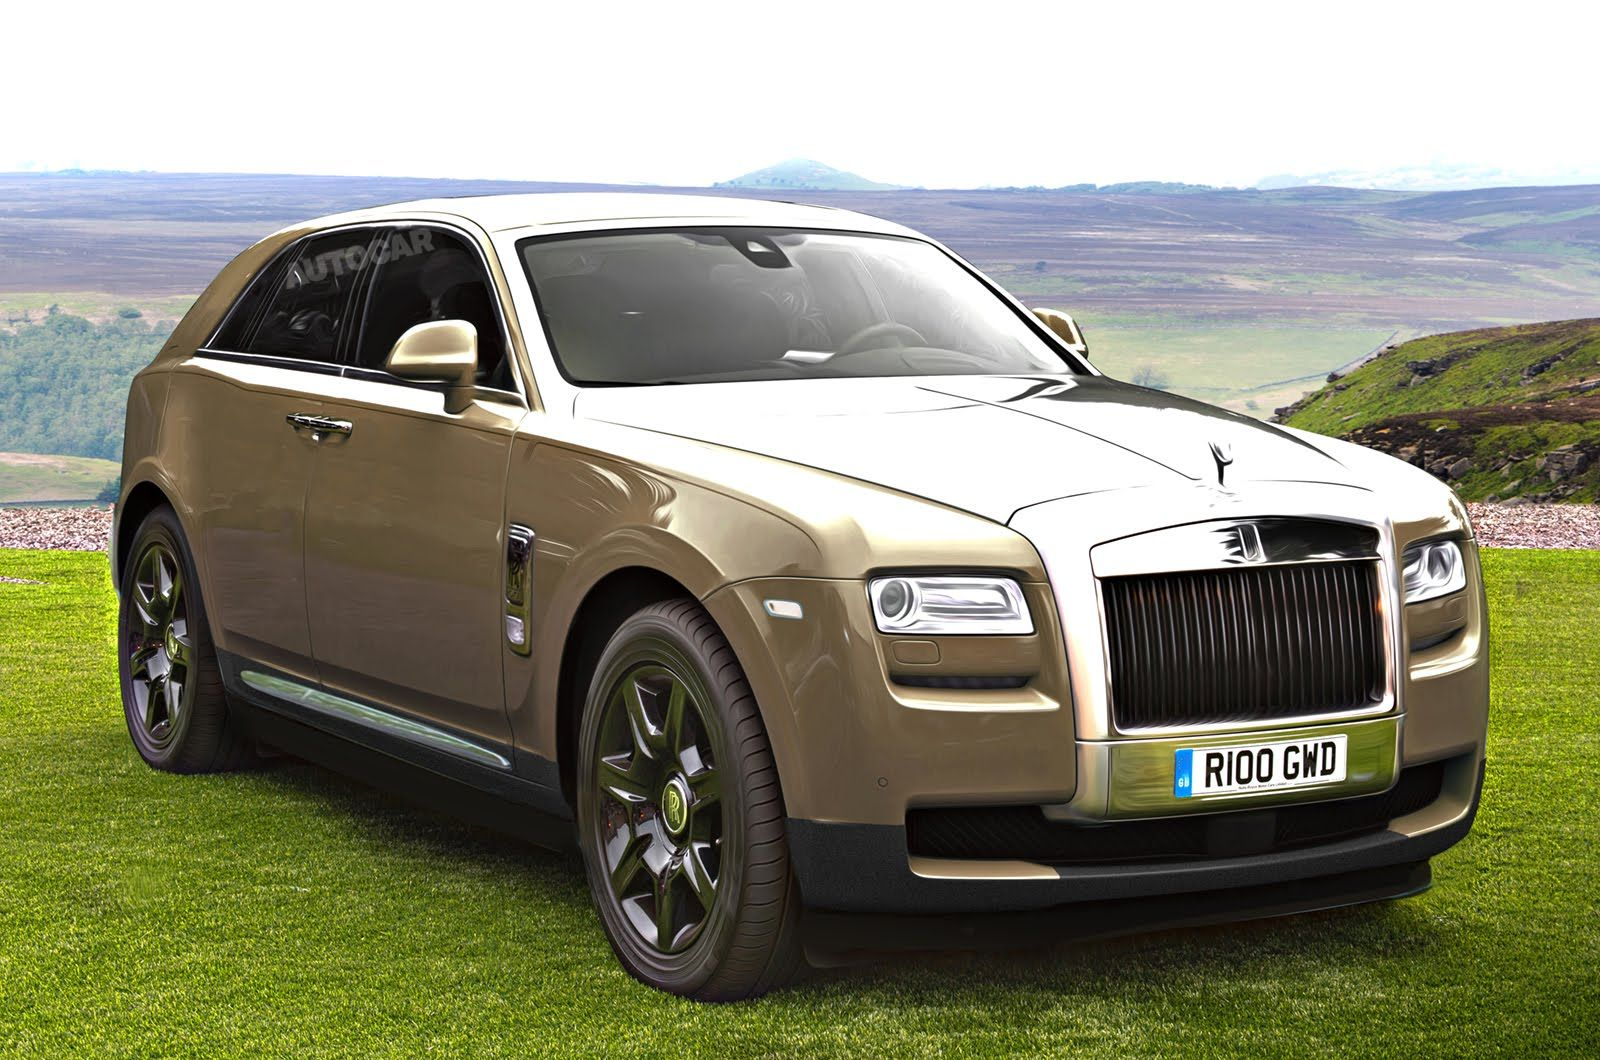 Cullinan The Suv Will Launch With A V12 Engine But It Could